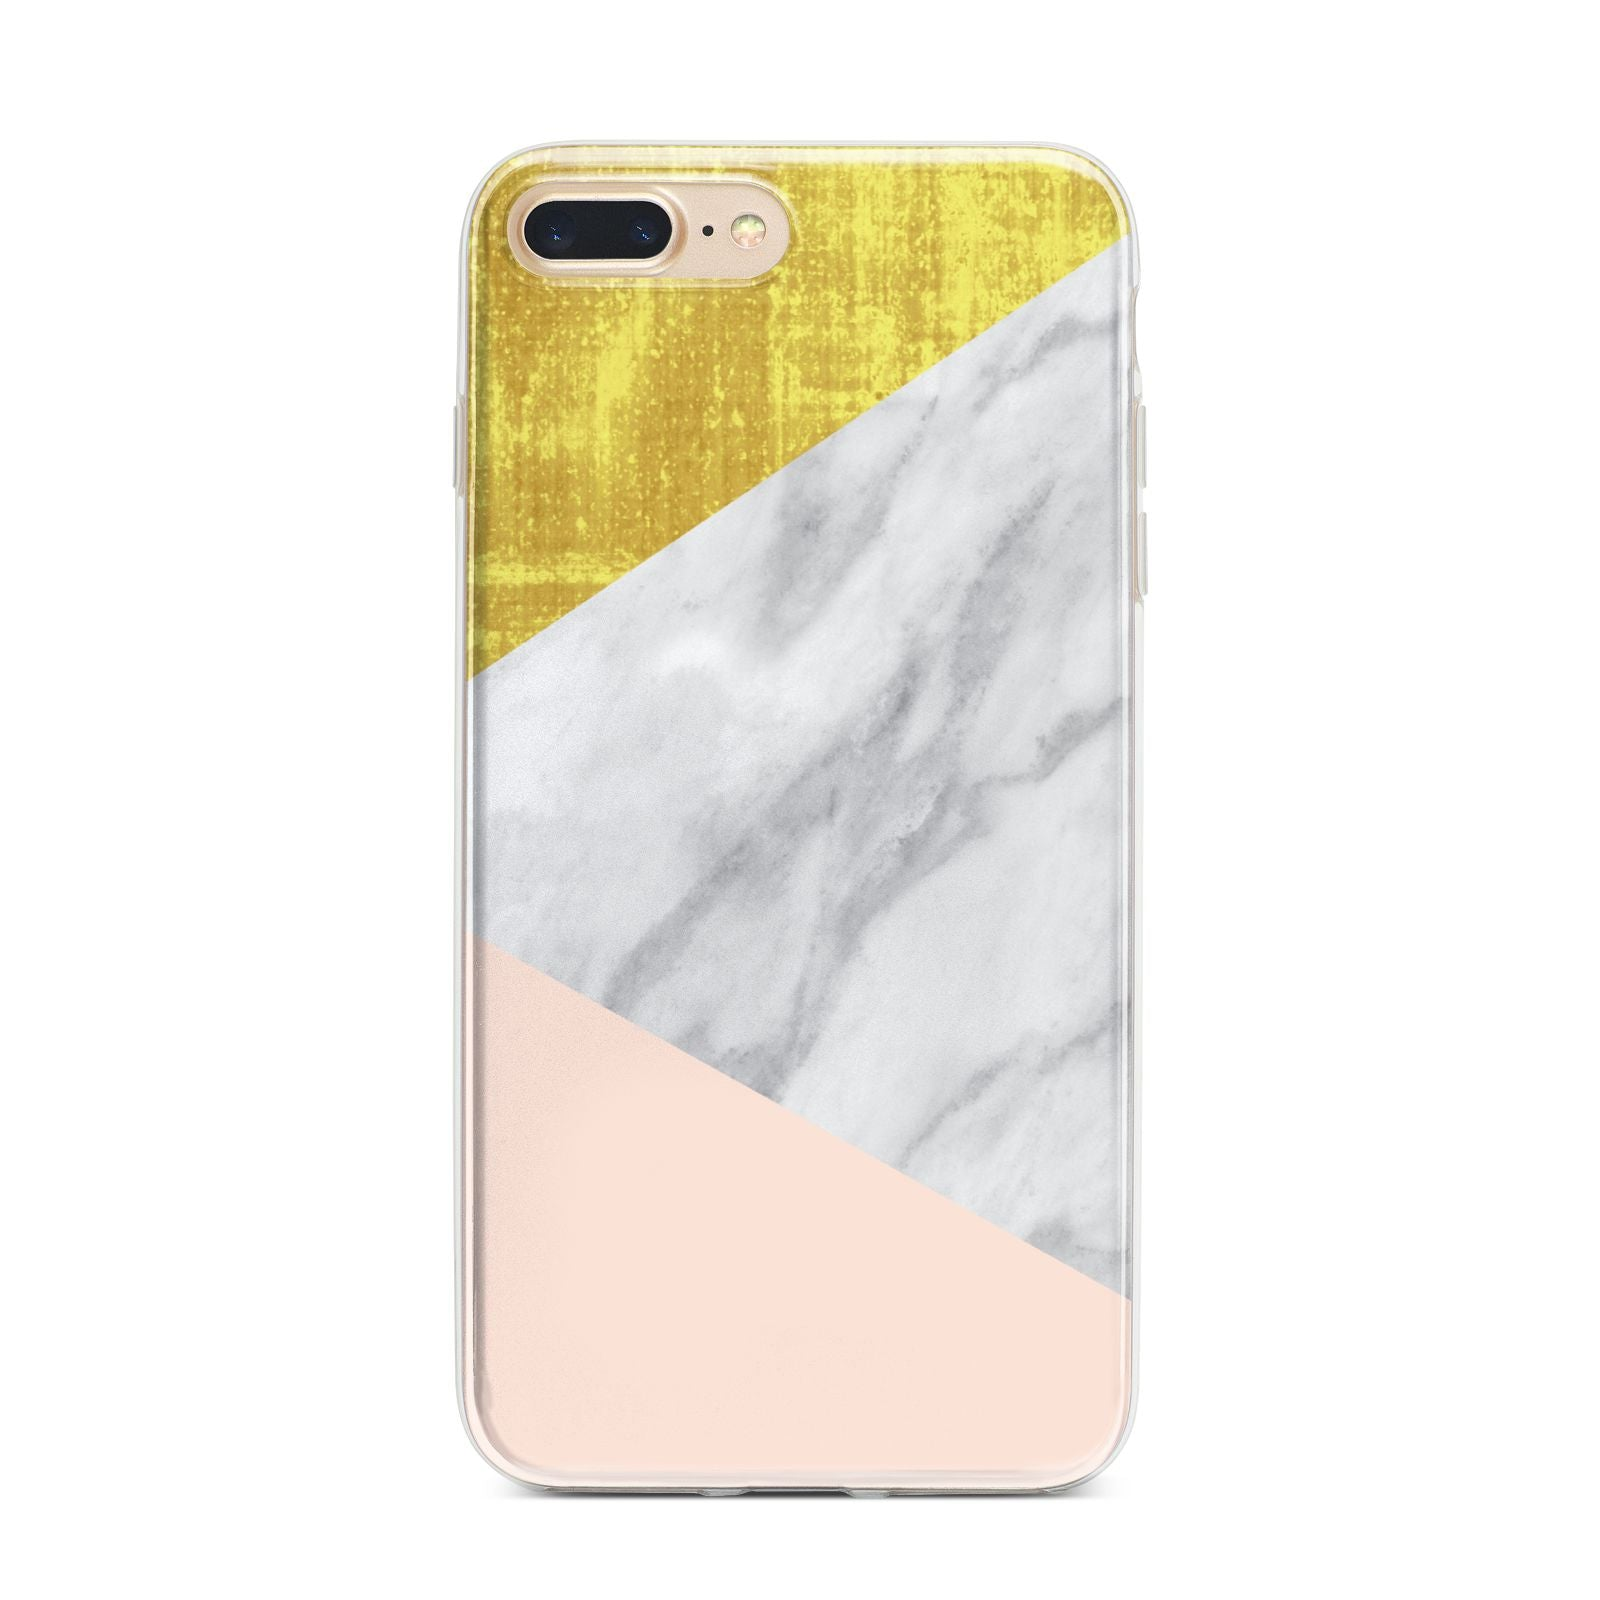 Marble White Gold Foil Peach iPhone 7 Plus Bumper Case on Gold iPhone